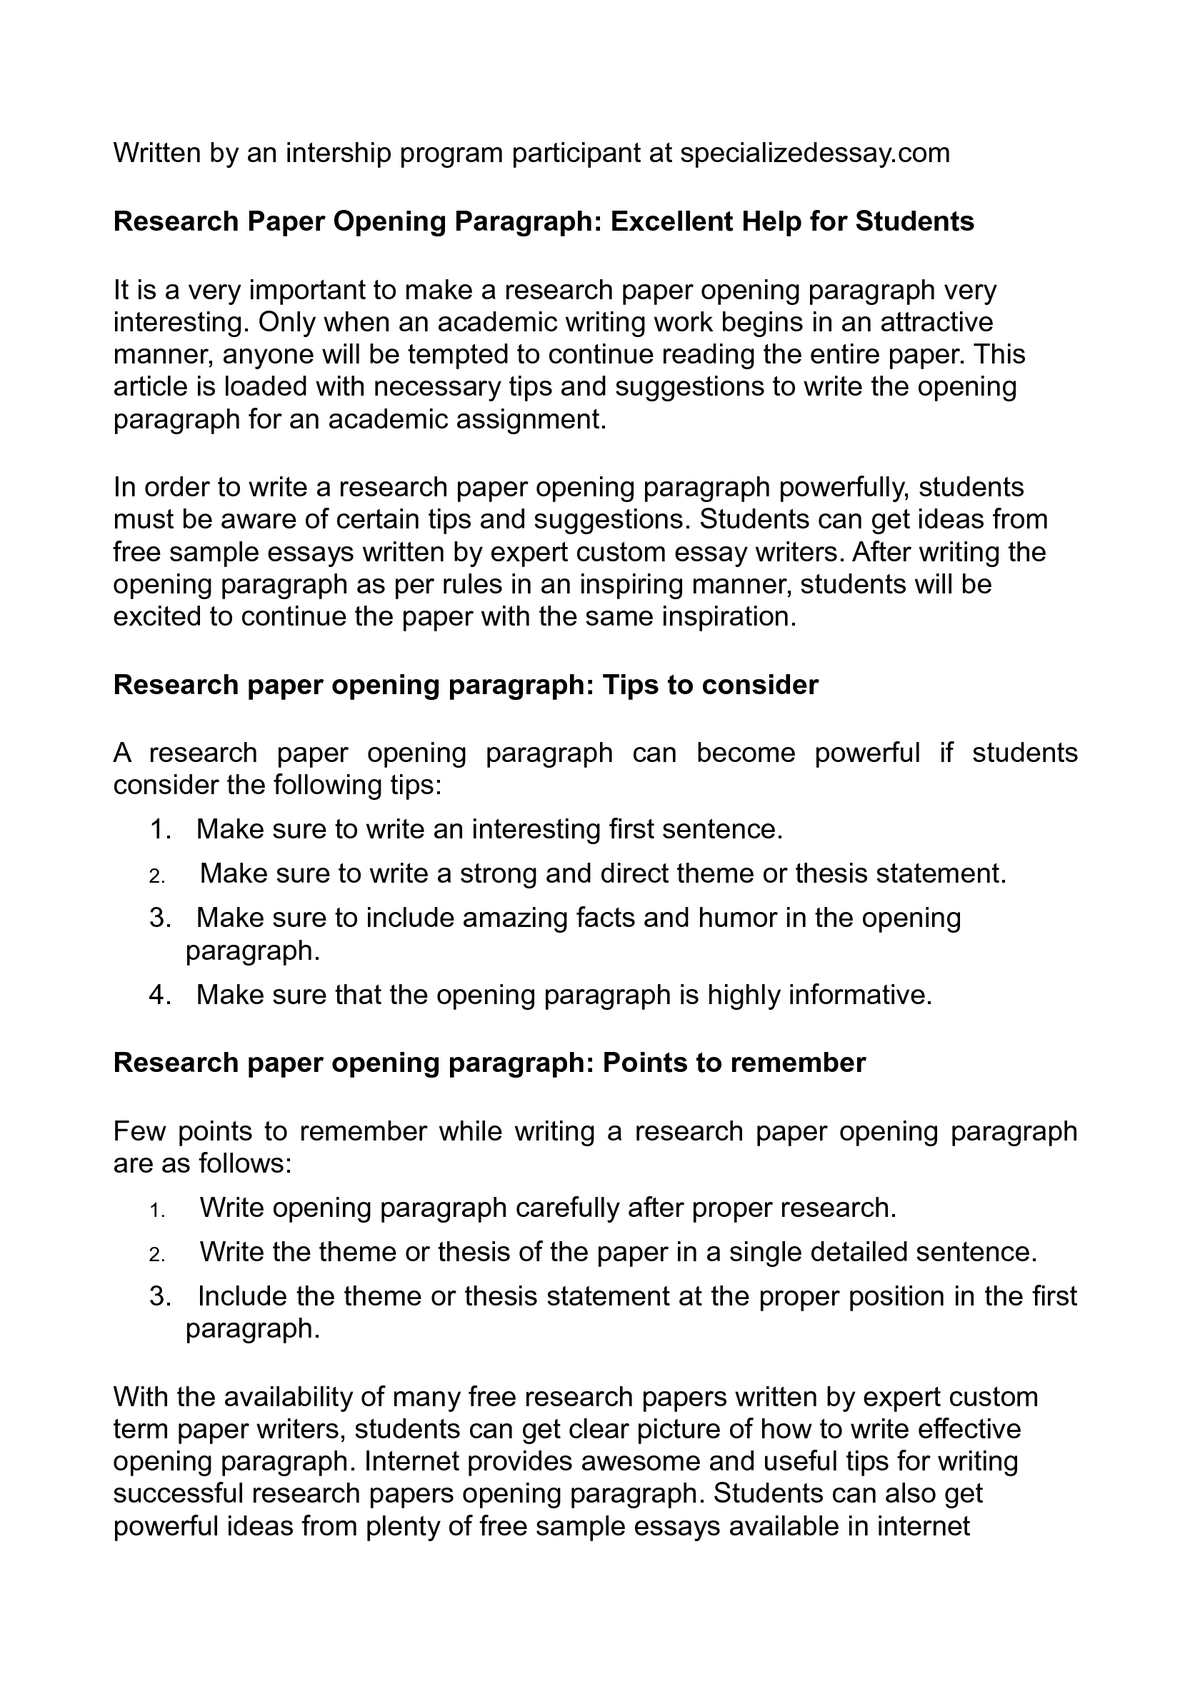 002 P1 How To Make Research Paper Formidable A Interesting Writing Fun Catchy Title For Full